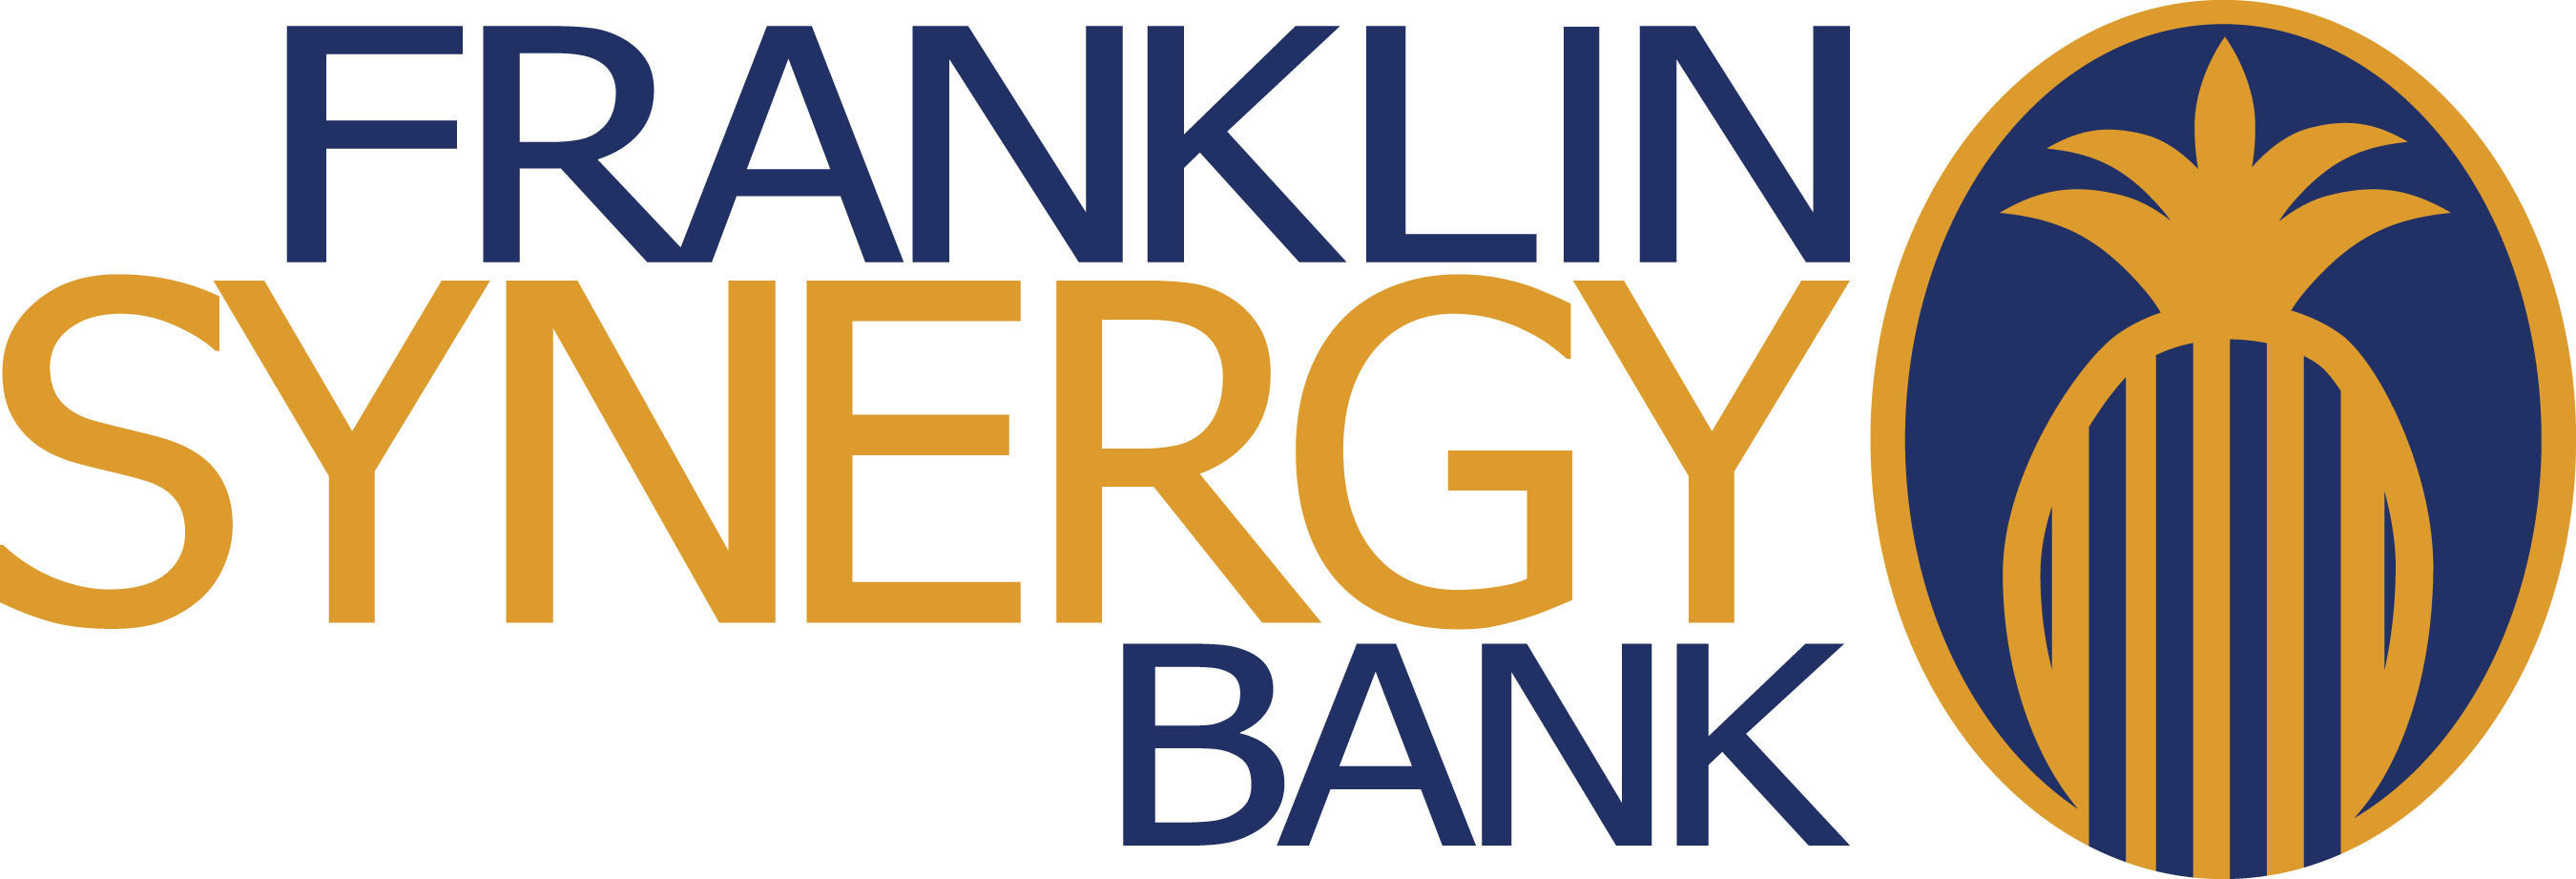 People you know. People you trust. Franklin Synergy Bank (PRNewsFoto/Franklin Synergy Bank)